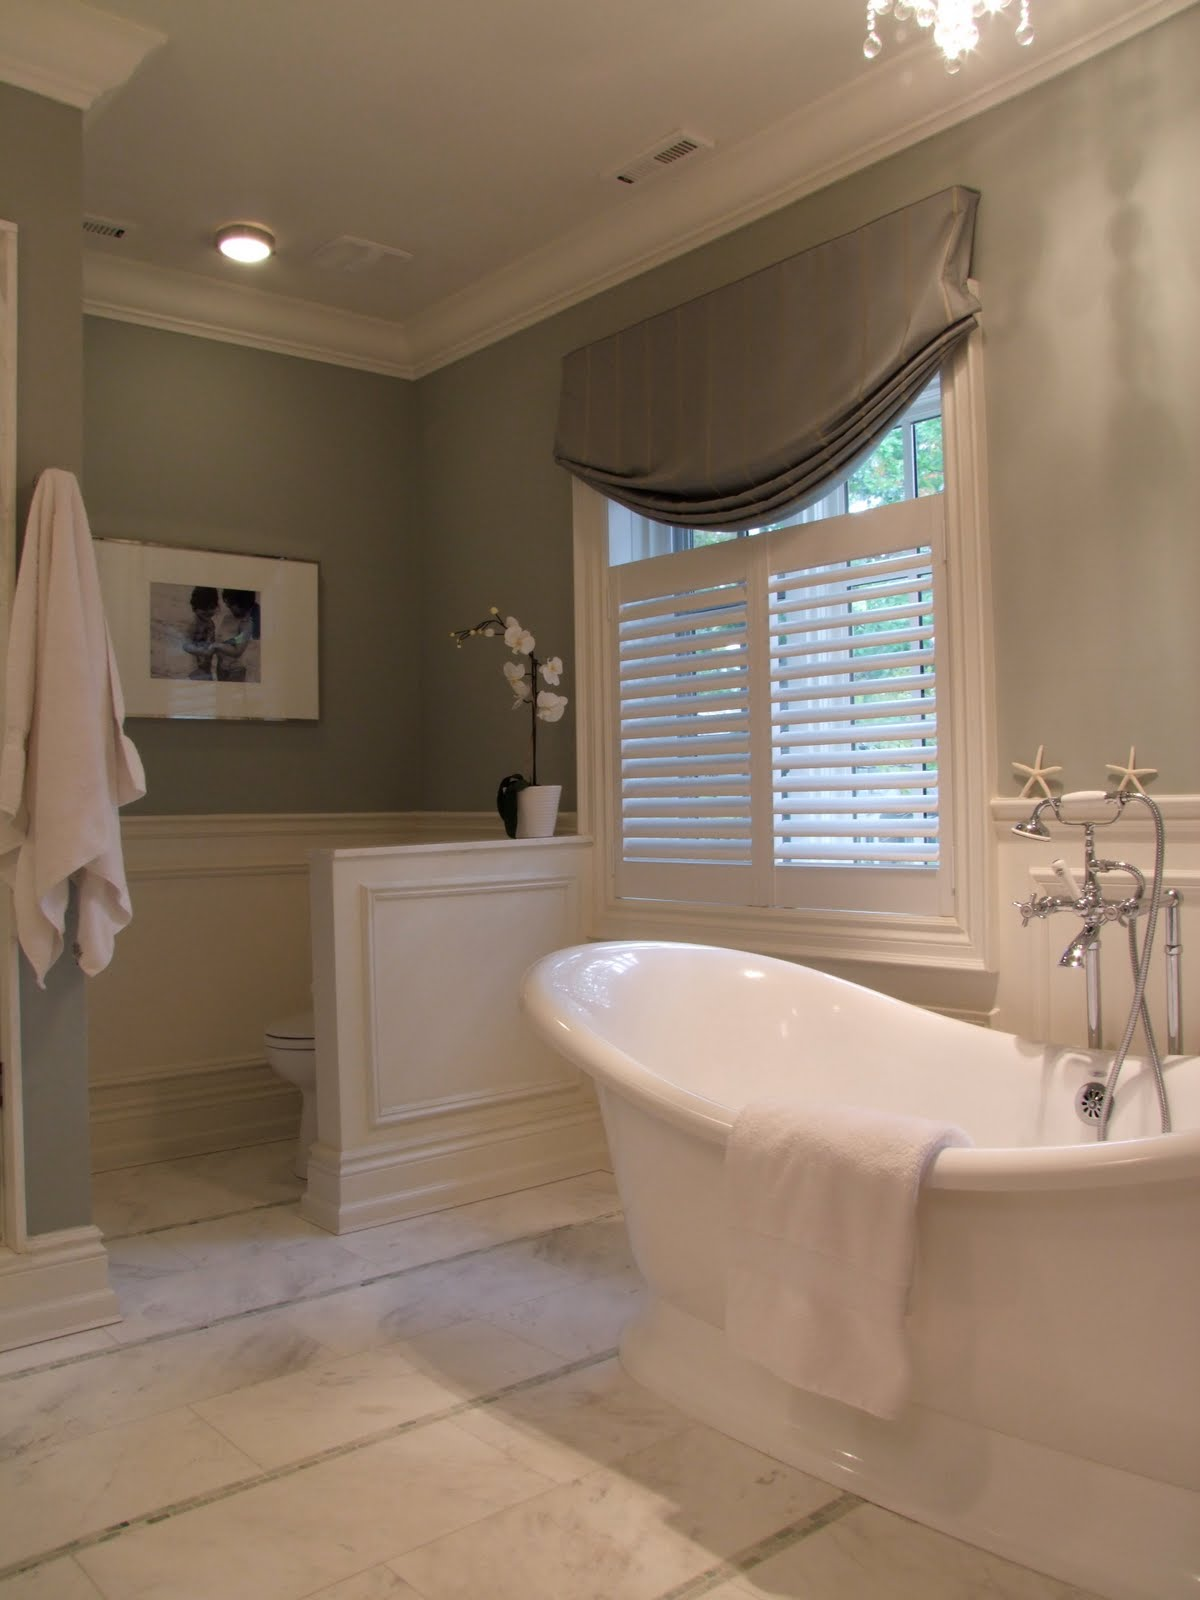 San Antonio Bathroom Remodel Awesome Decorating Design